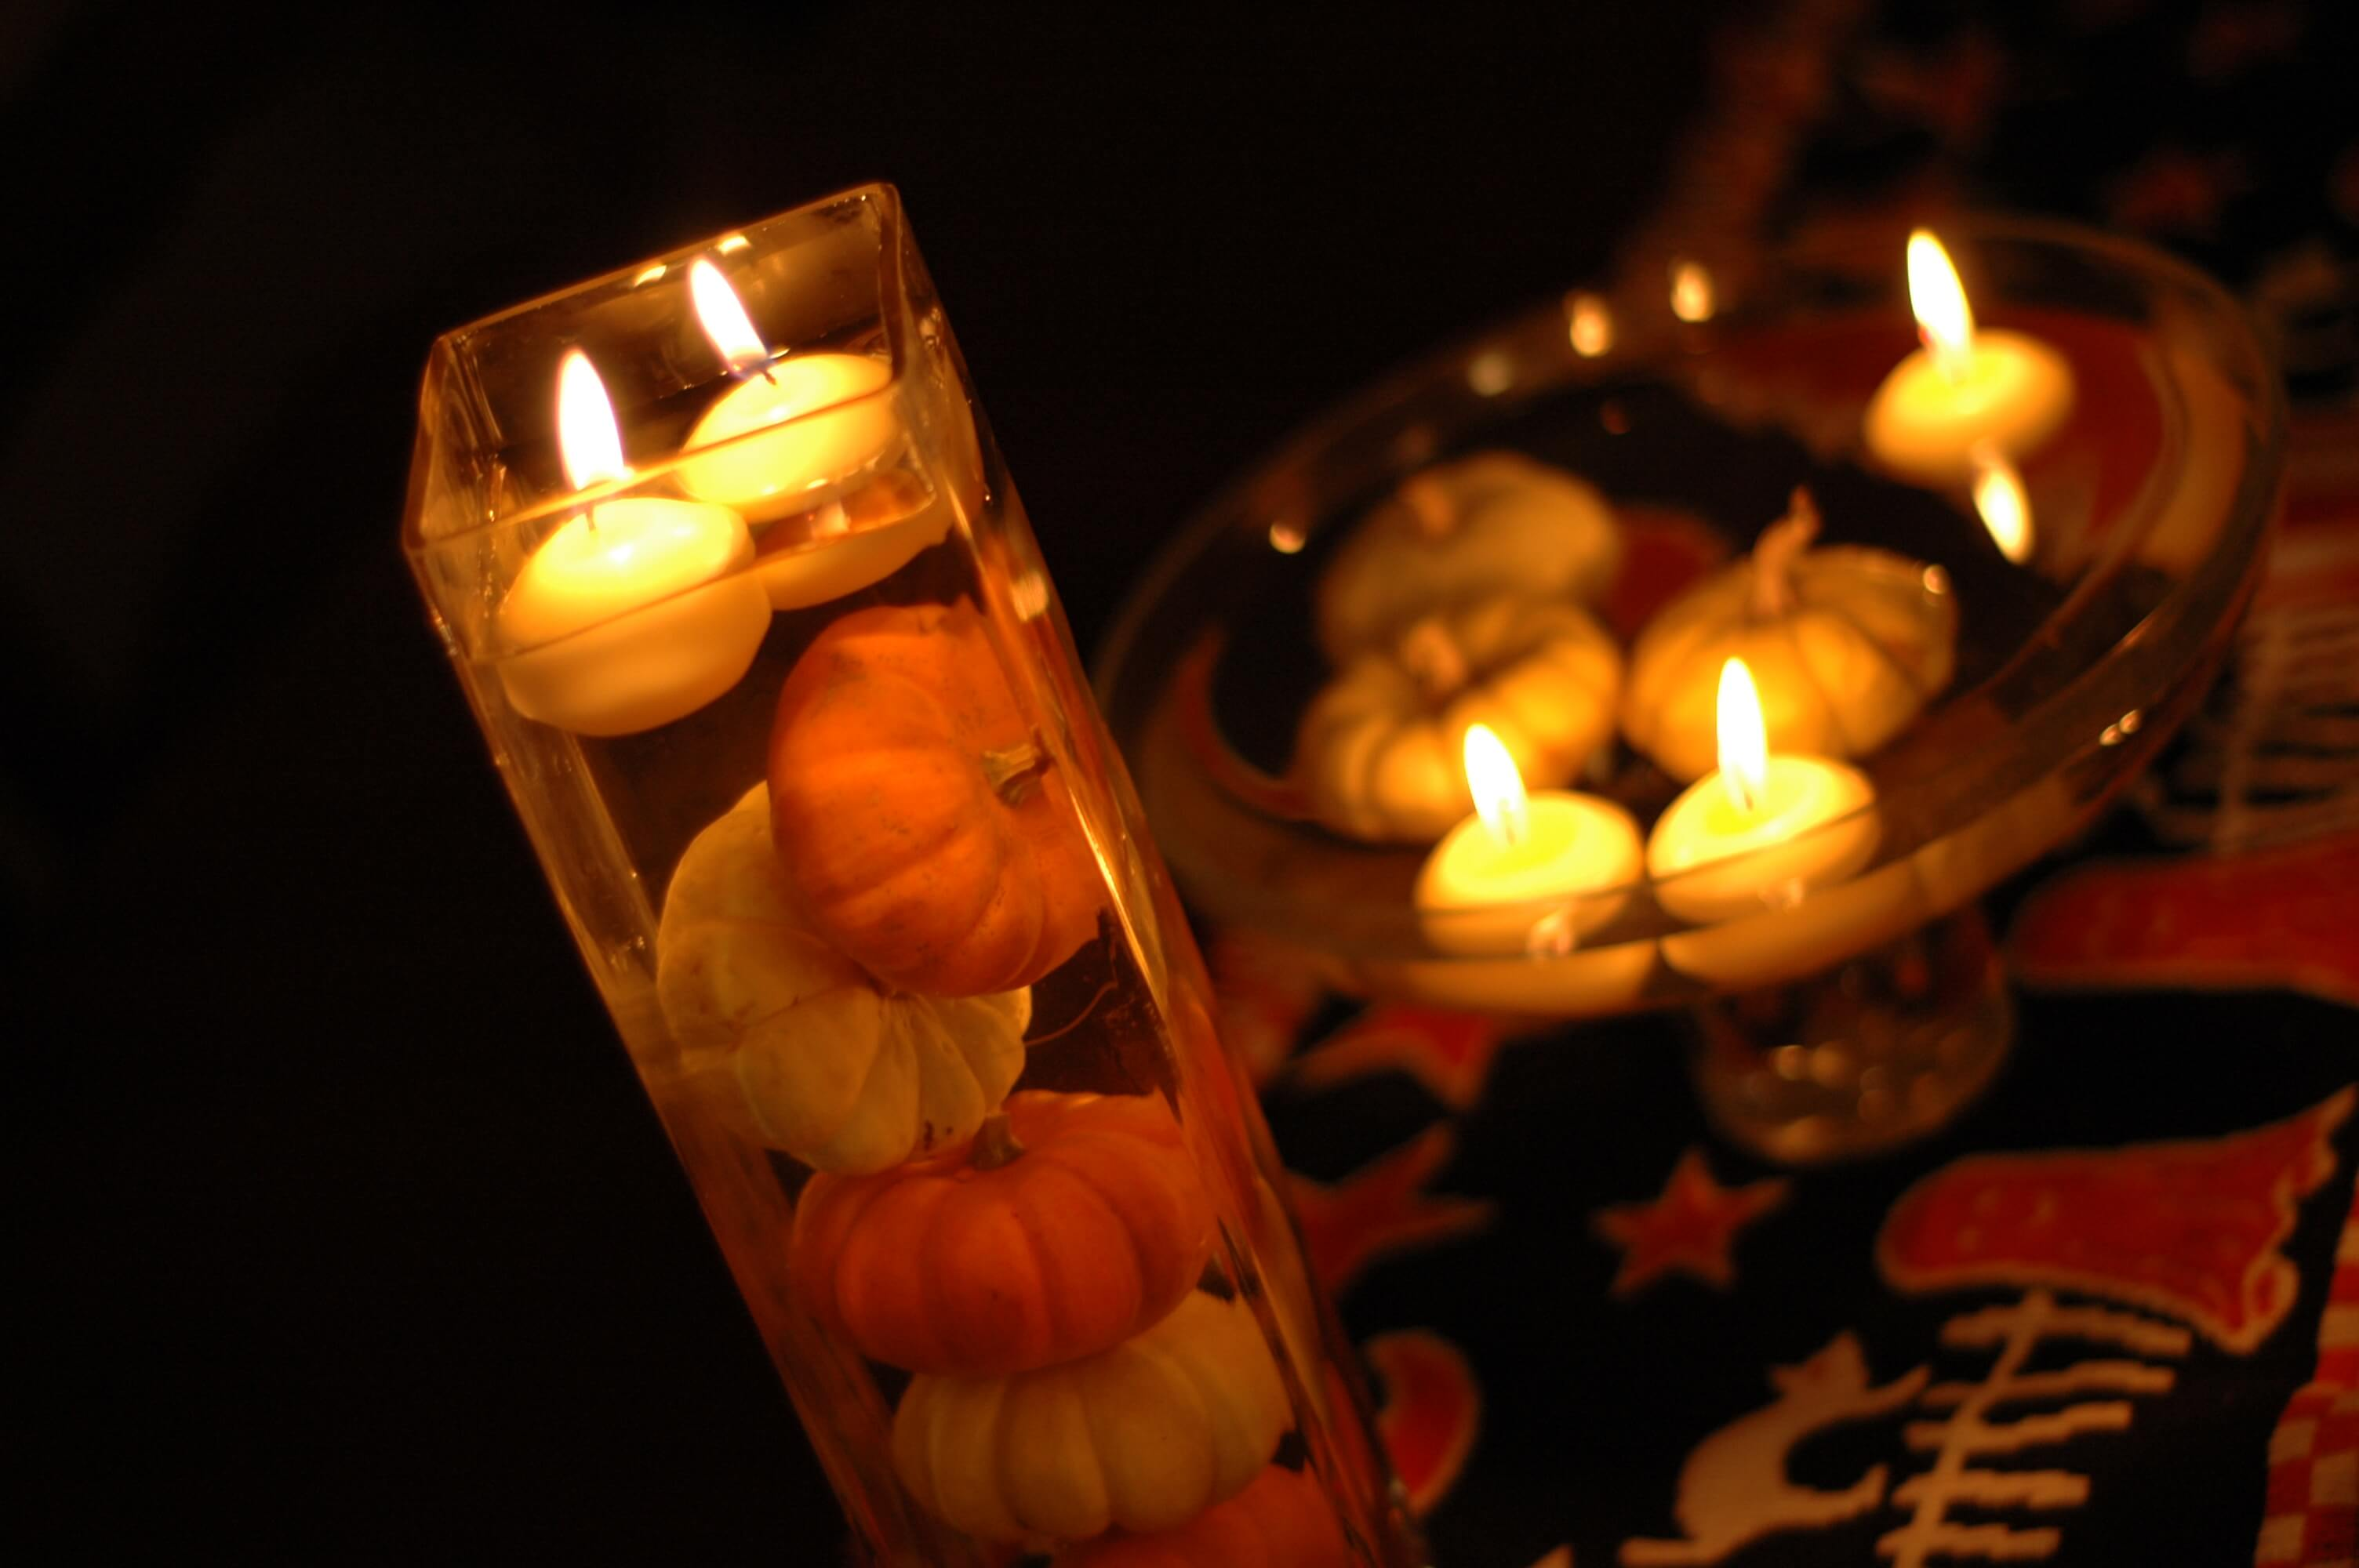 Candles Floating Amidst and Above the Pumpkins